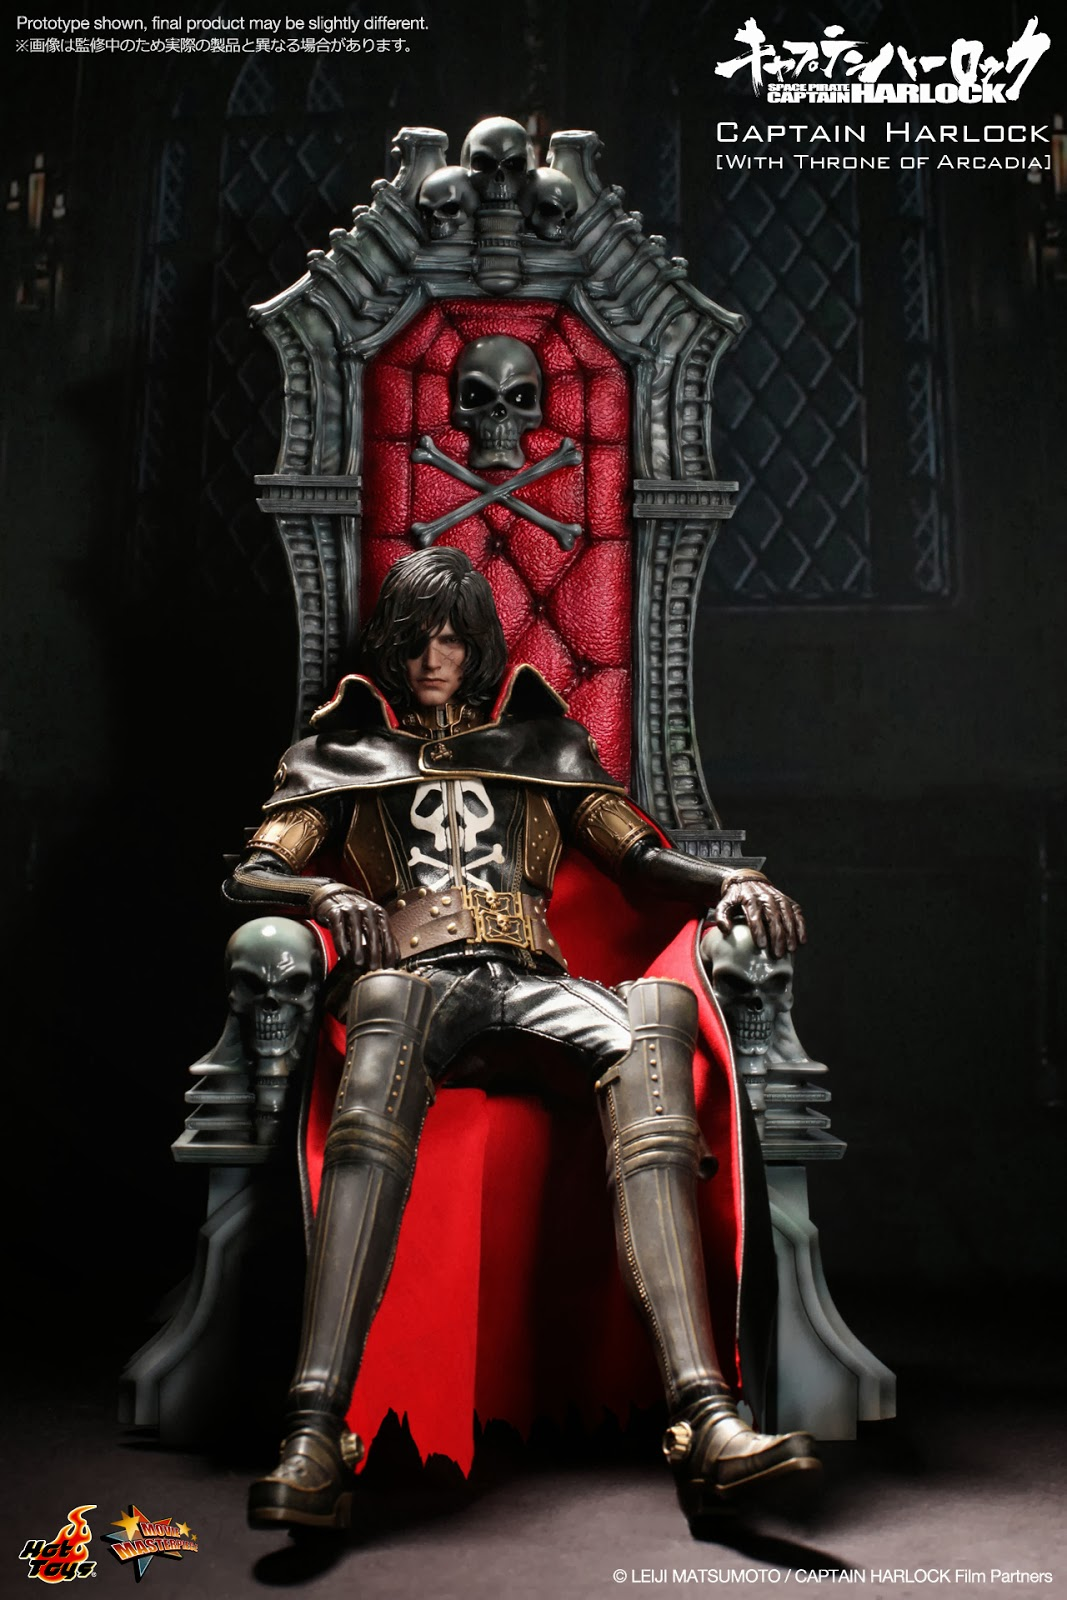 Animated Skull Wallpaper Super Punch Hot Toys Space Pirate Captain Harlock